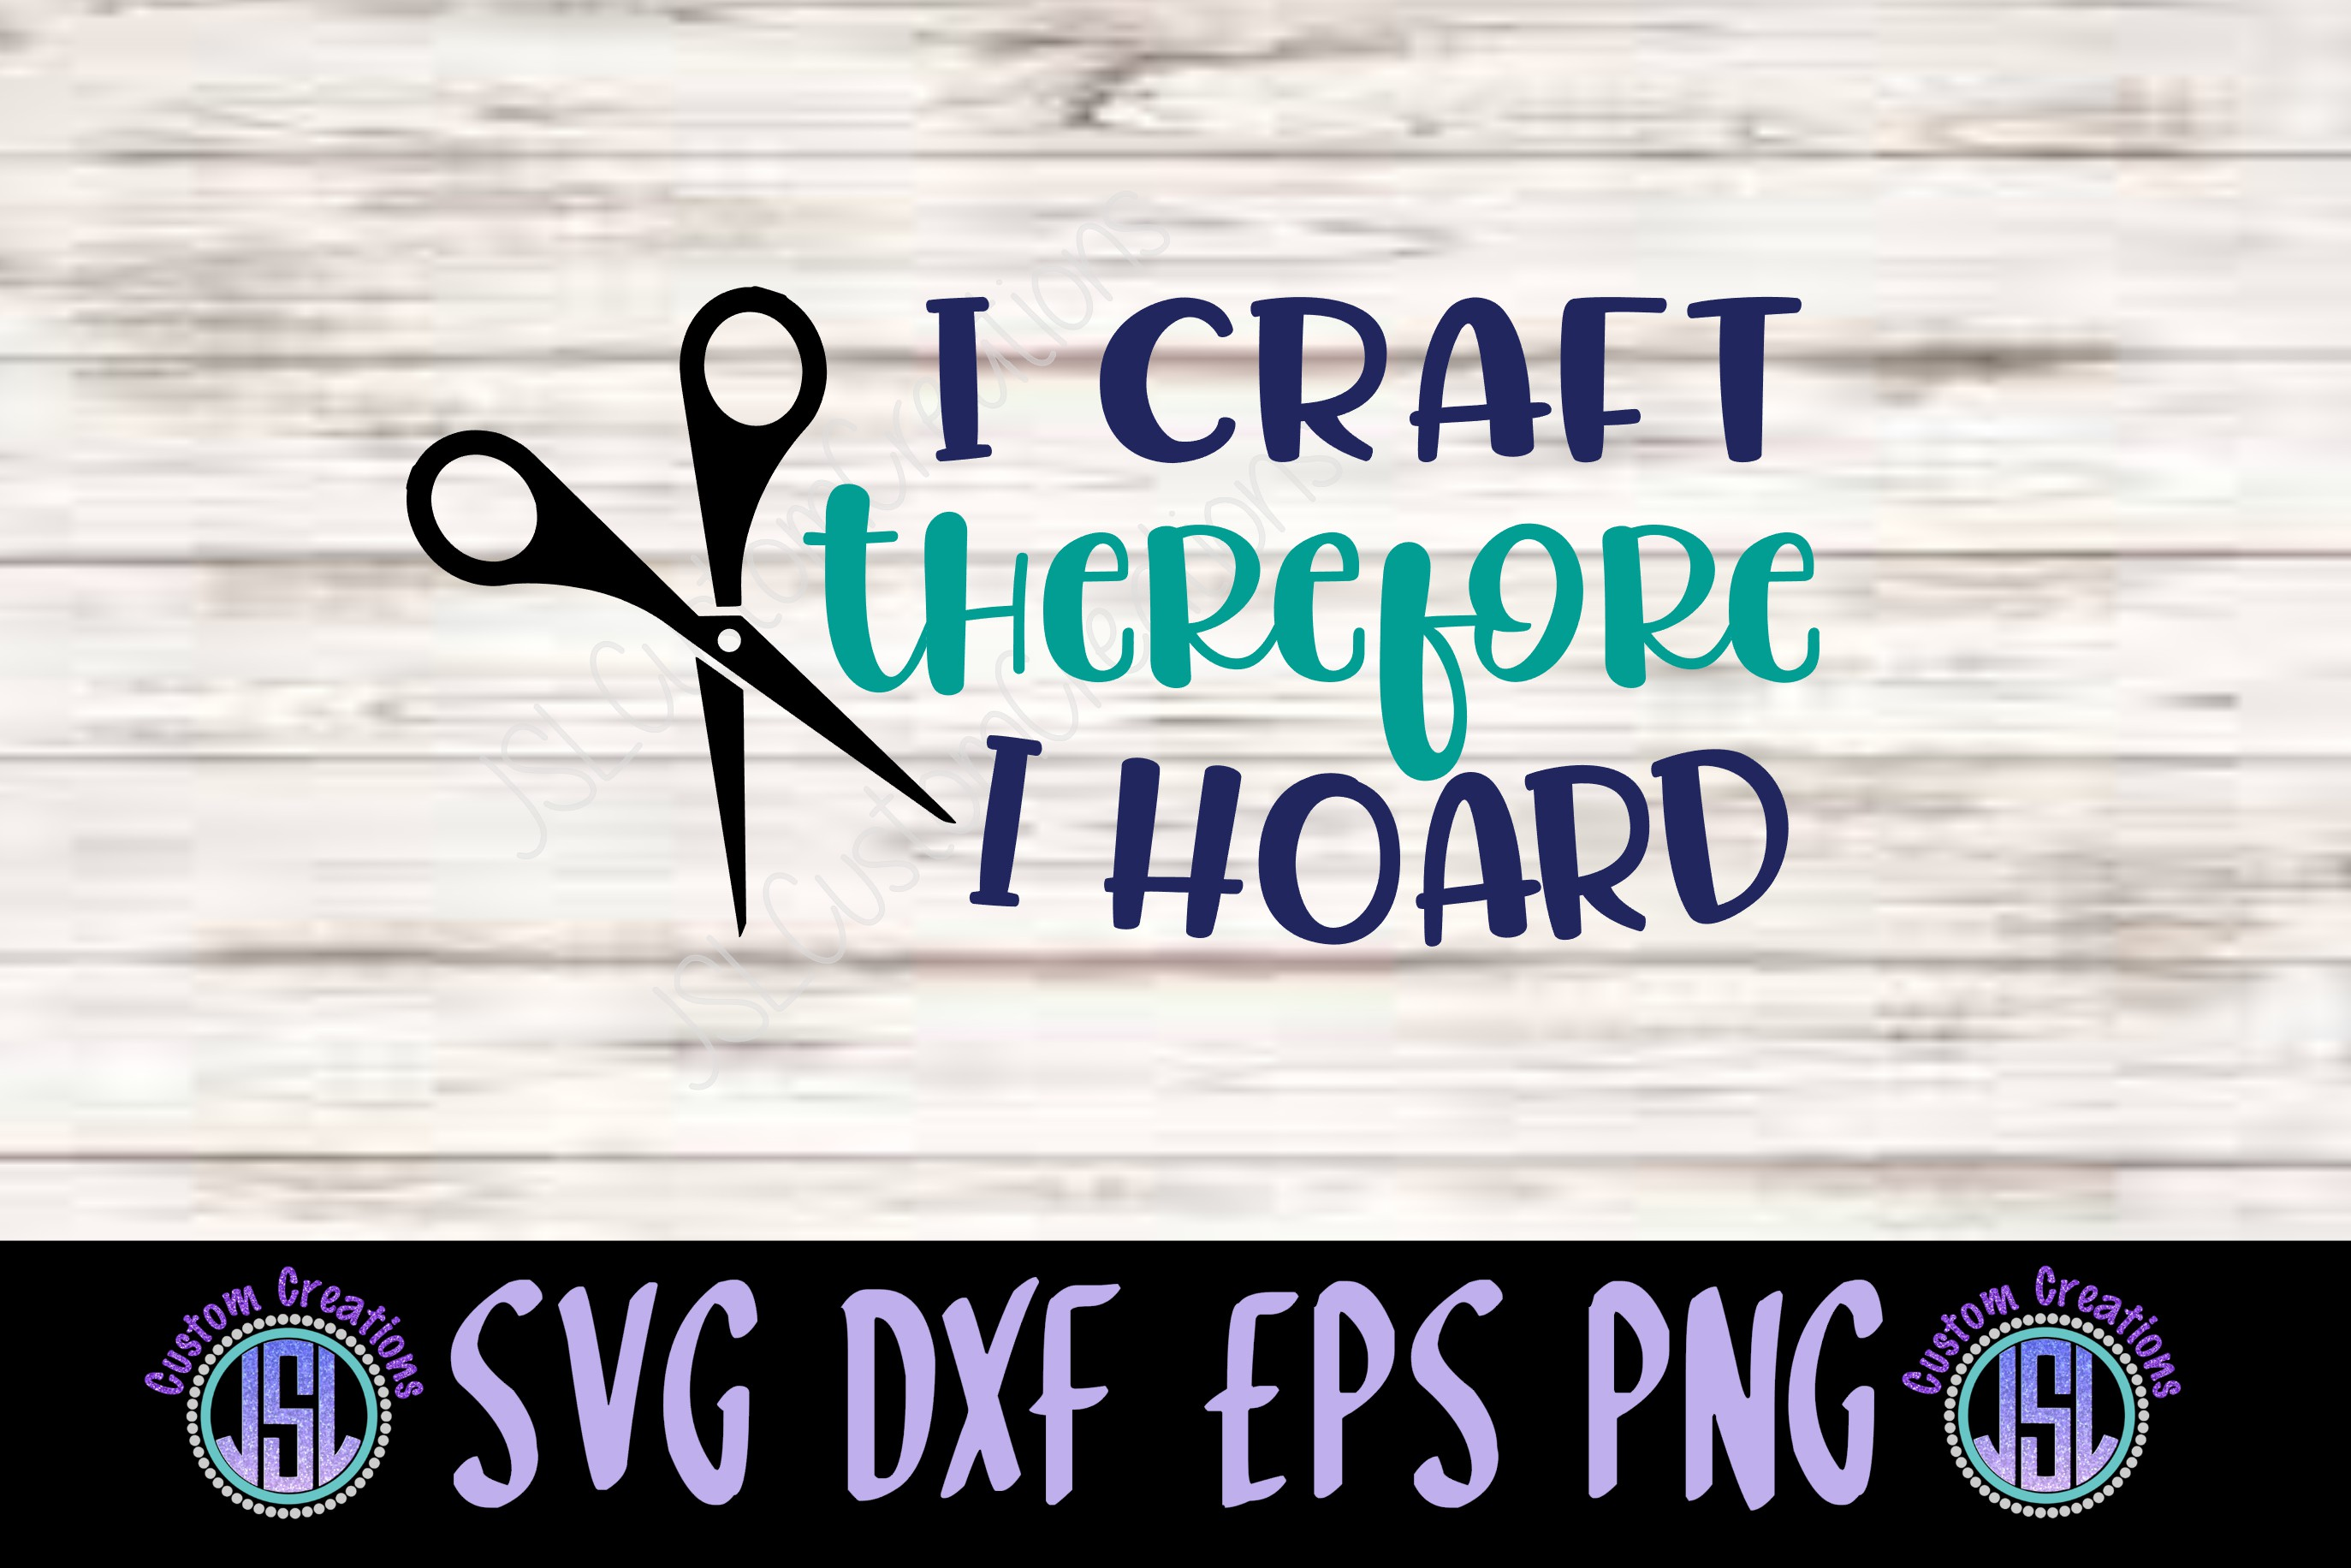 I Craft Therefore I Hoard| SVG DXF EPS PNG | Digital Cut Fil example image 1